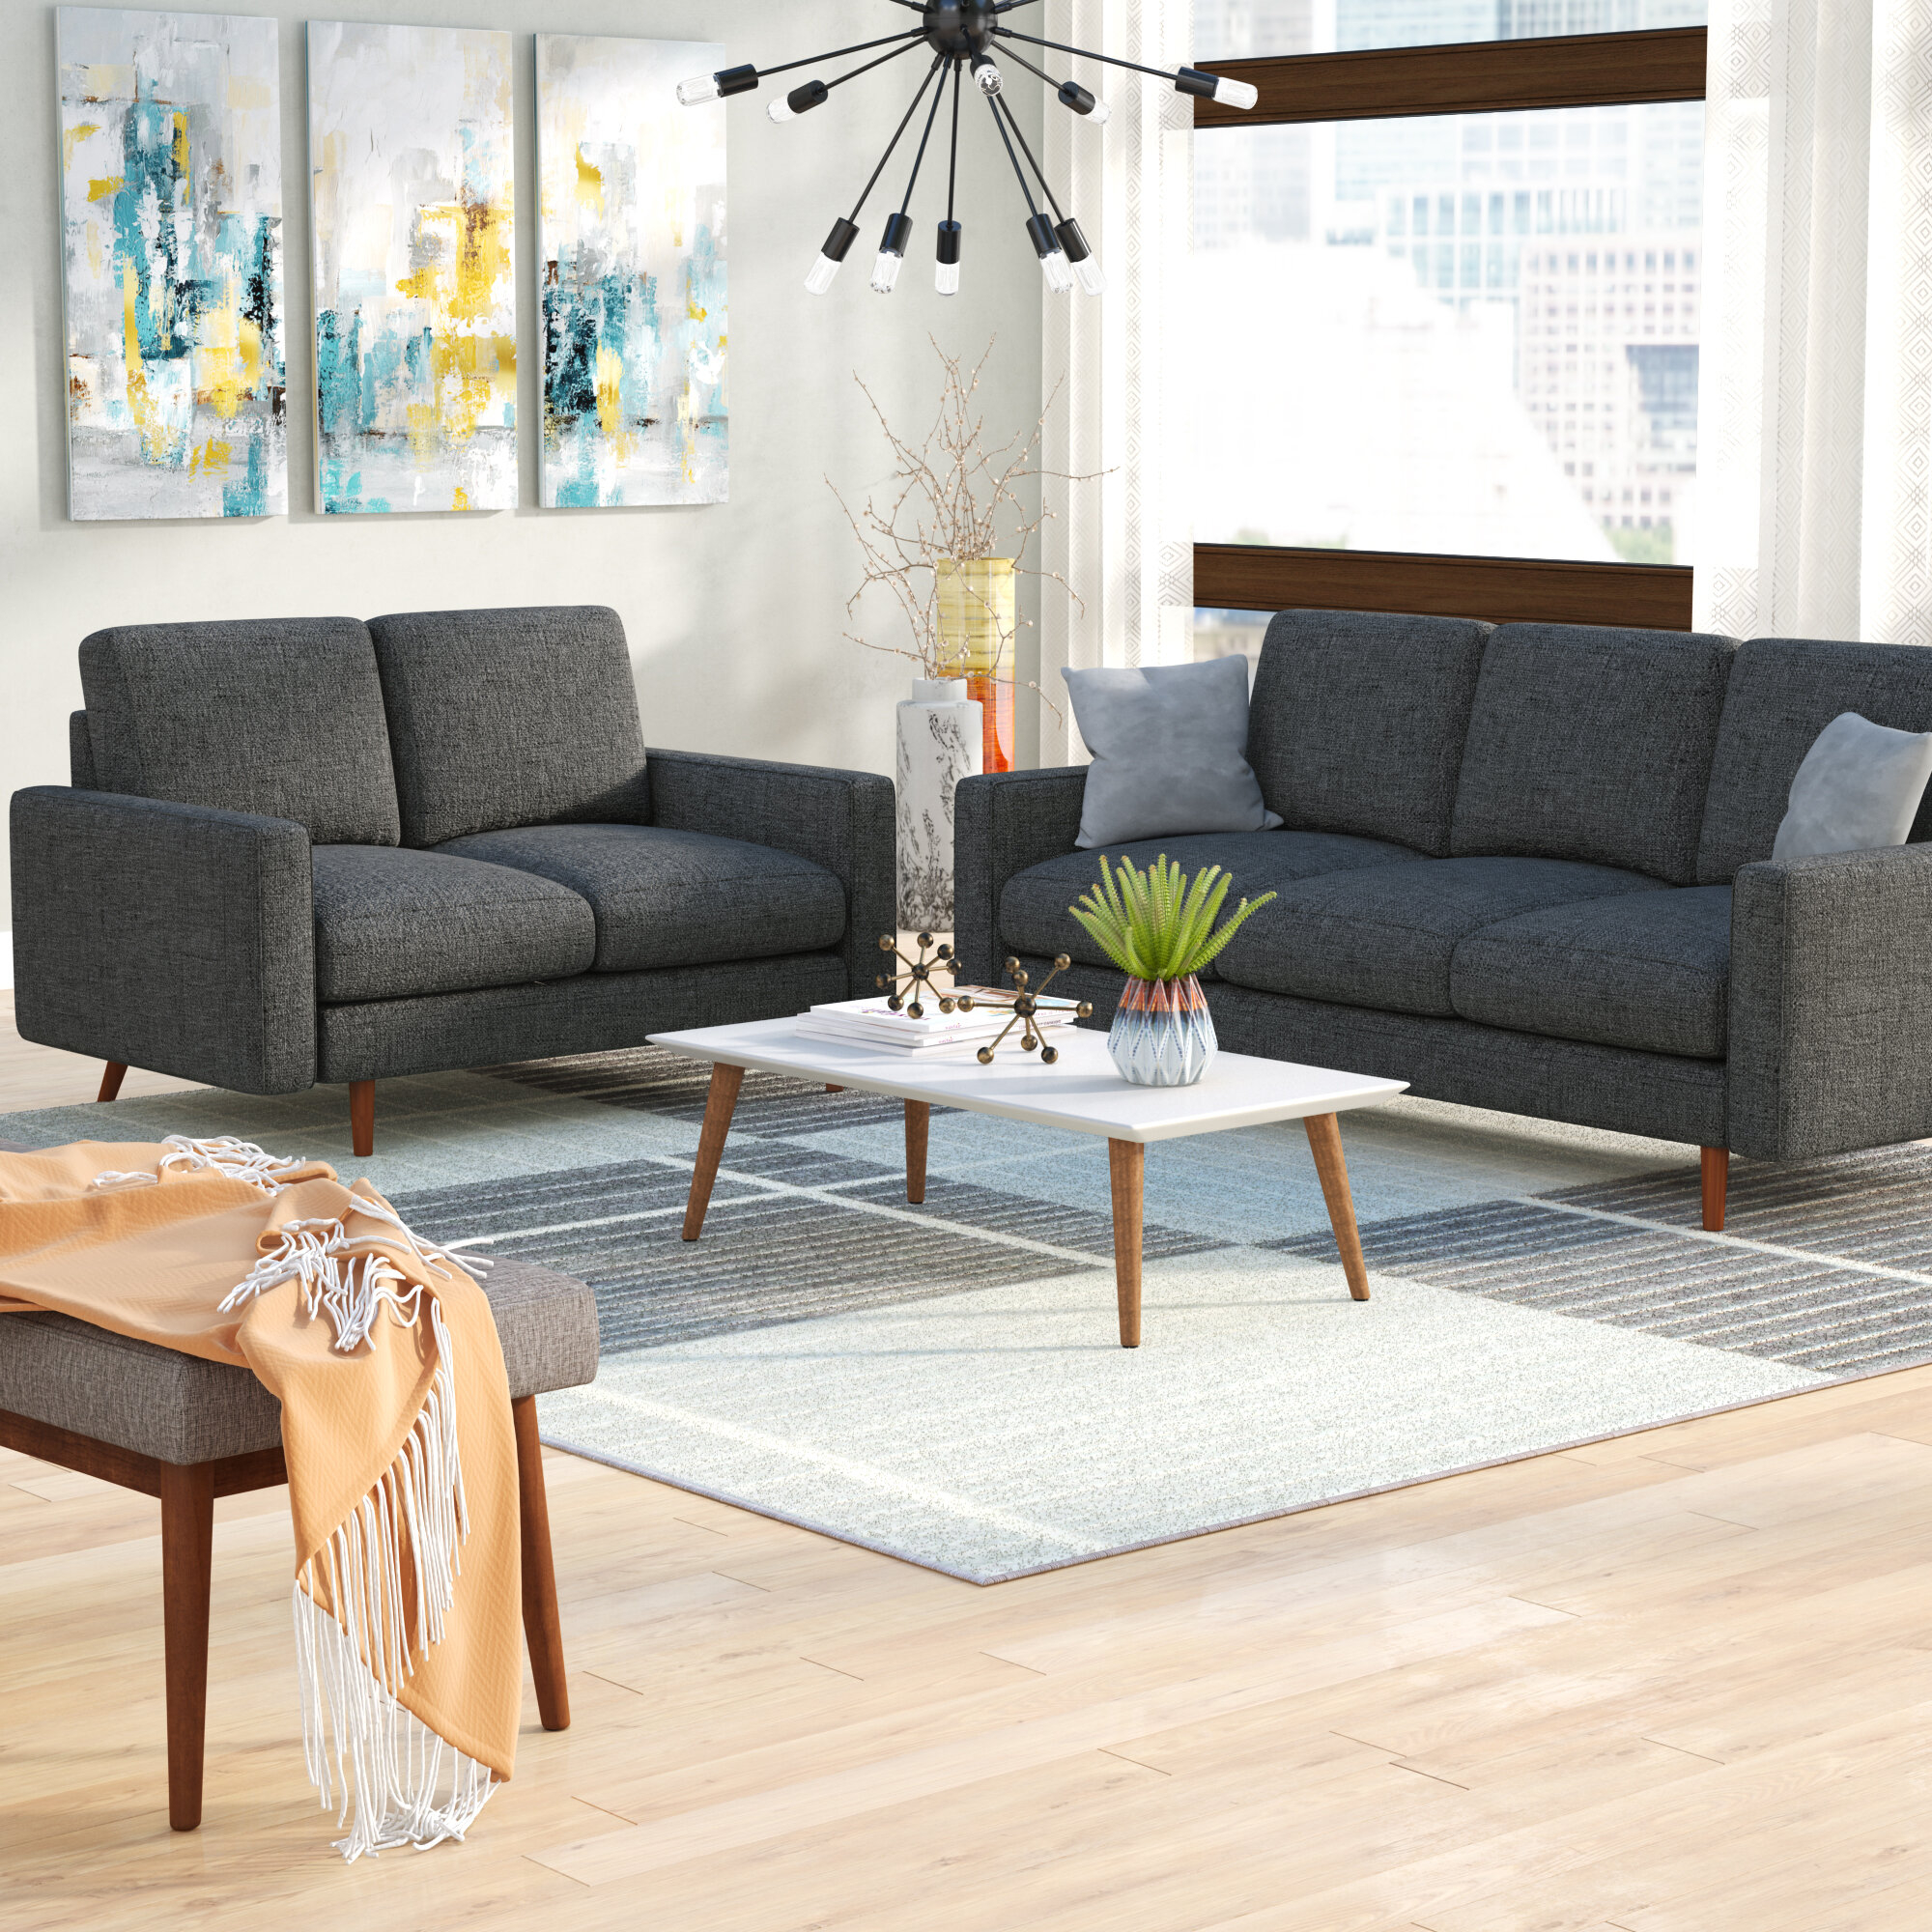 Macsen 2 Piece Living Room Set throughout 13 Clever Tricks of How to Improve Shop Living Room Sets